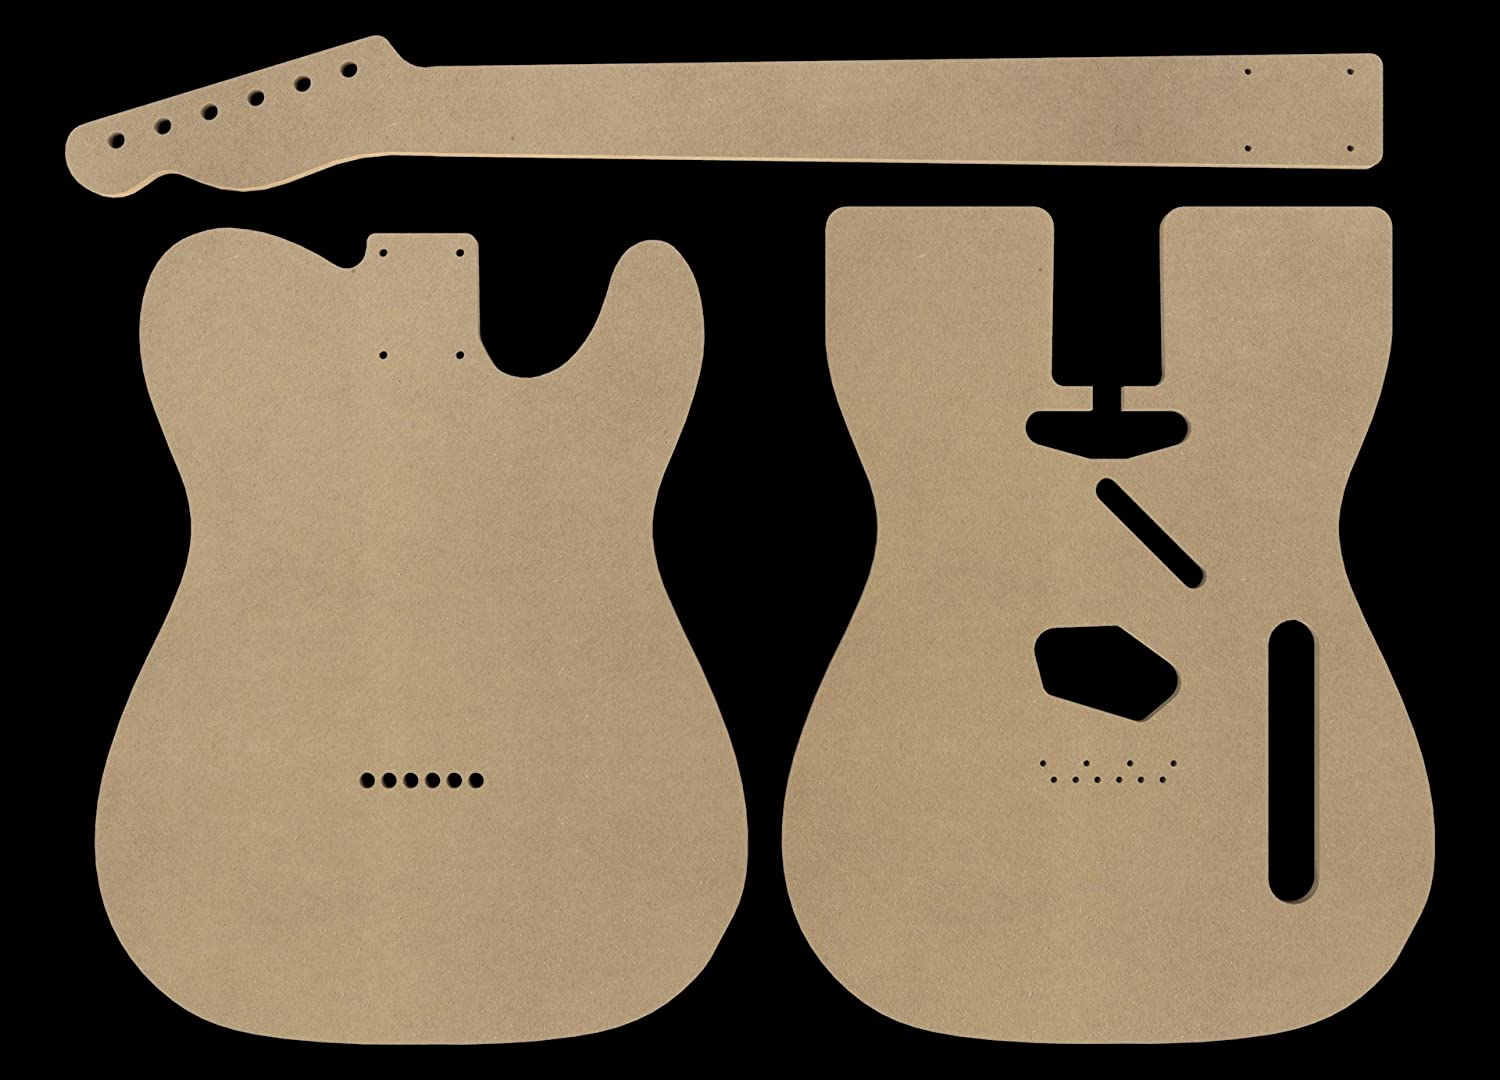 Amazon Telecaster Mdf Guitar Body And Neck Template 025